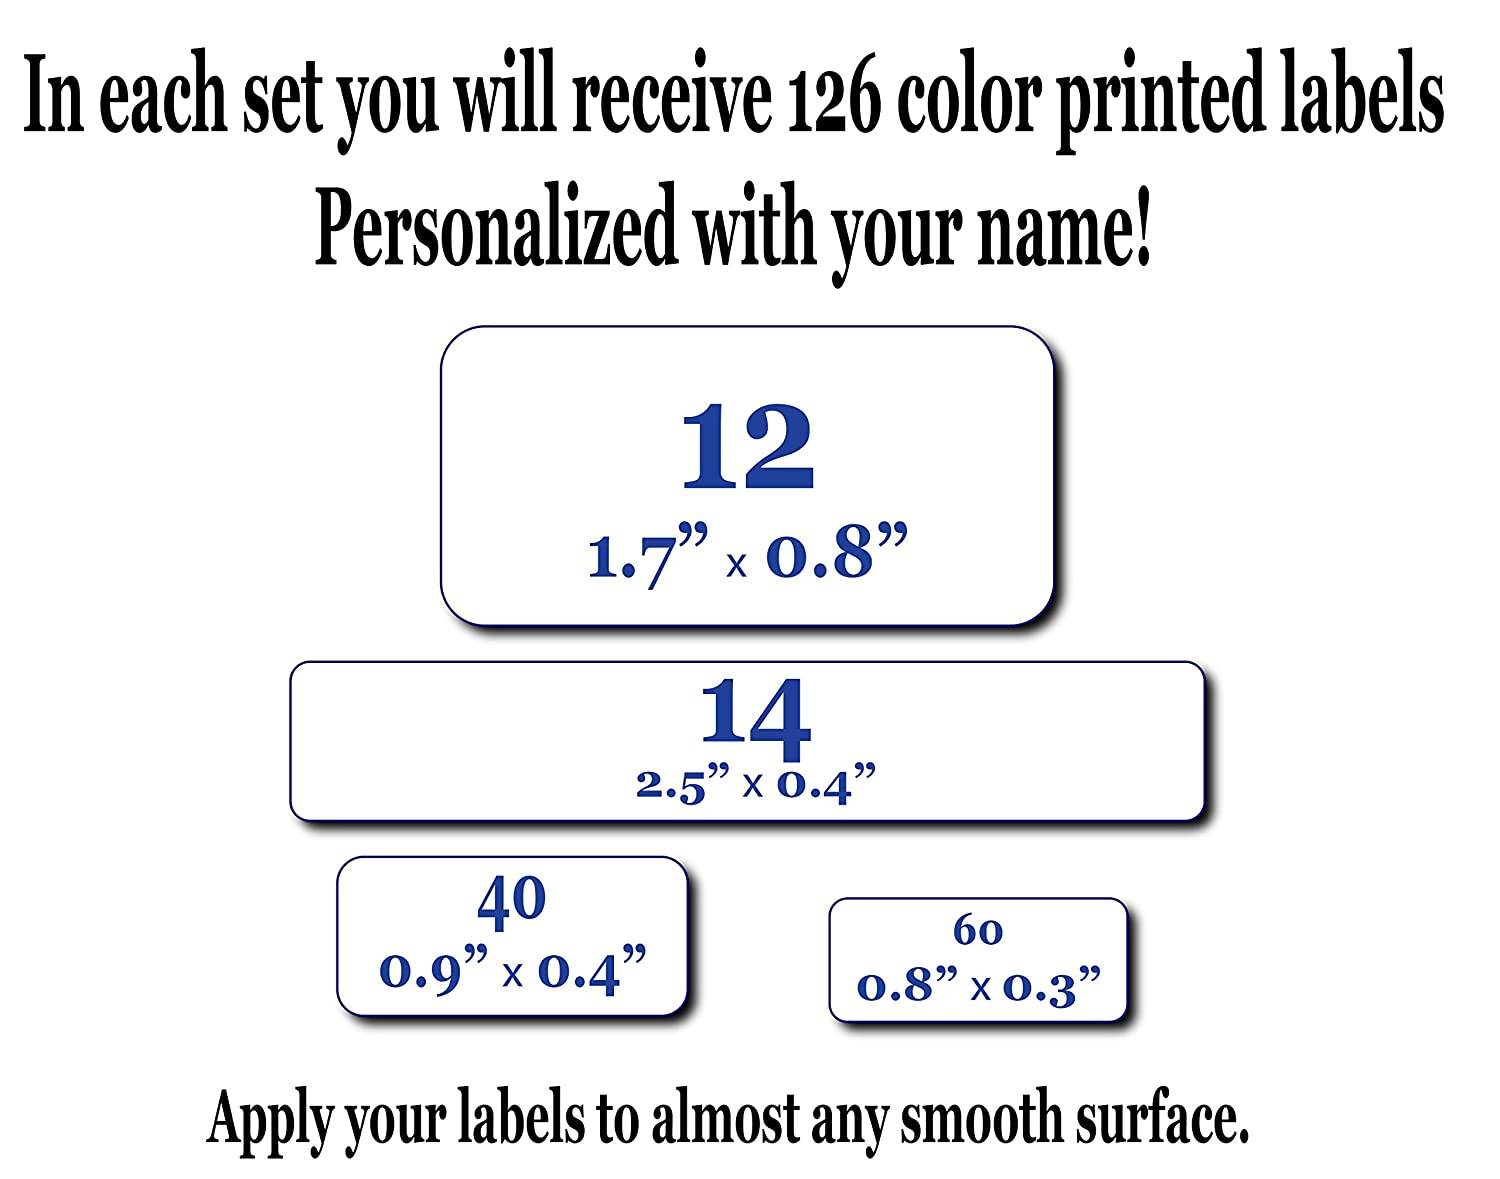 126 Personalized Waterproof Name Labels  Press and Stick Multi use Custom  Name Labels  Highly Durable Customized Name Stickers with Permanent Self